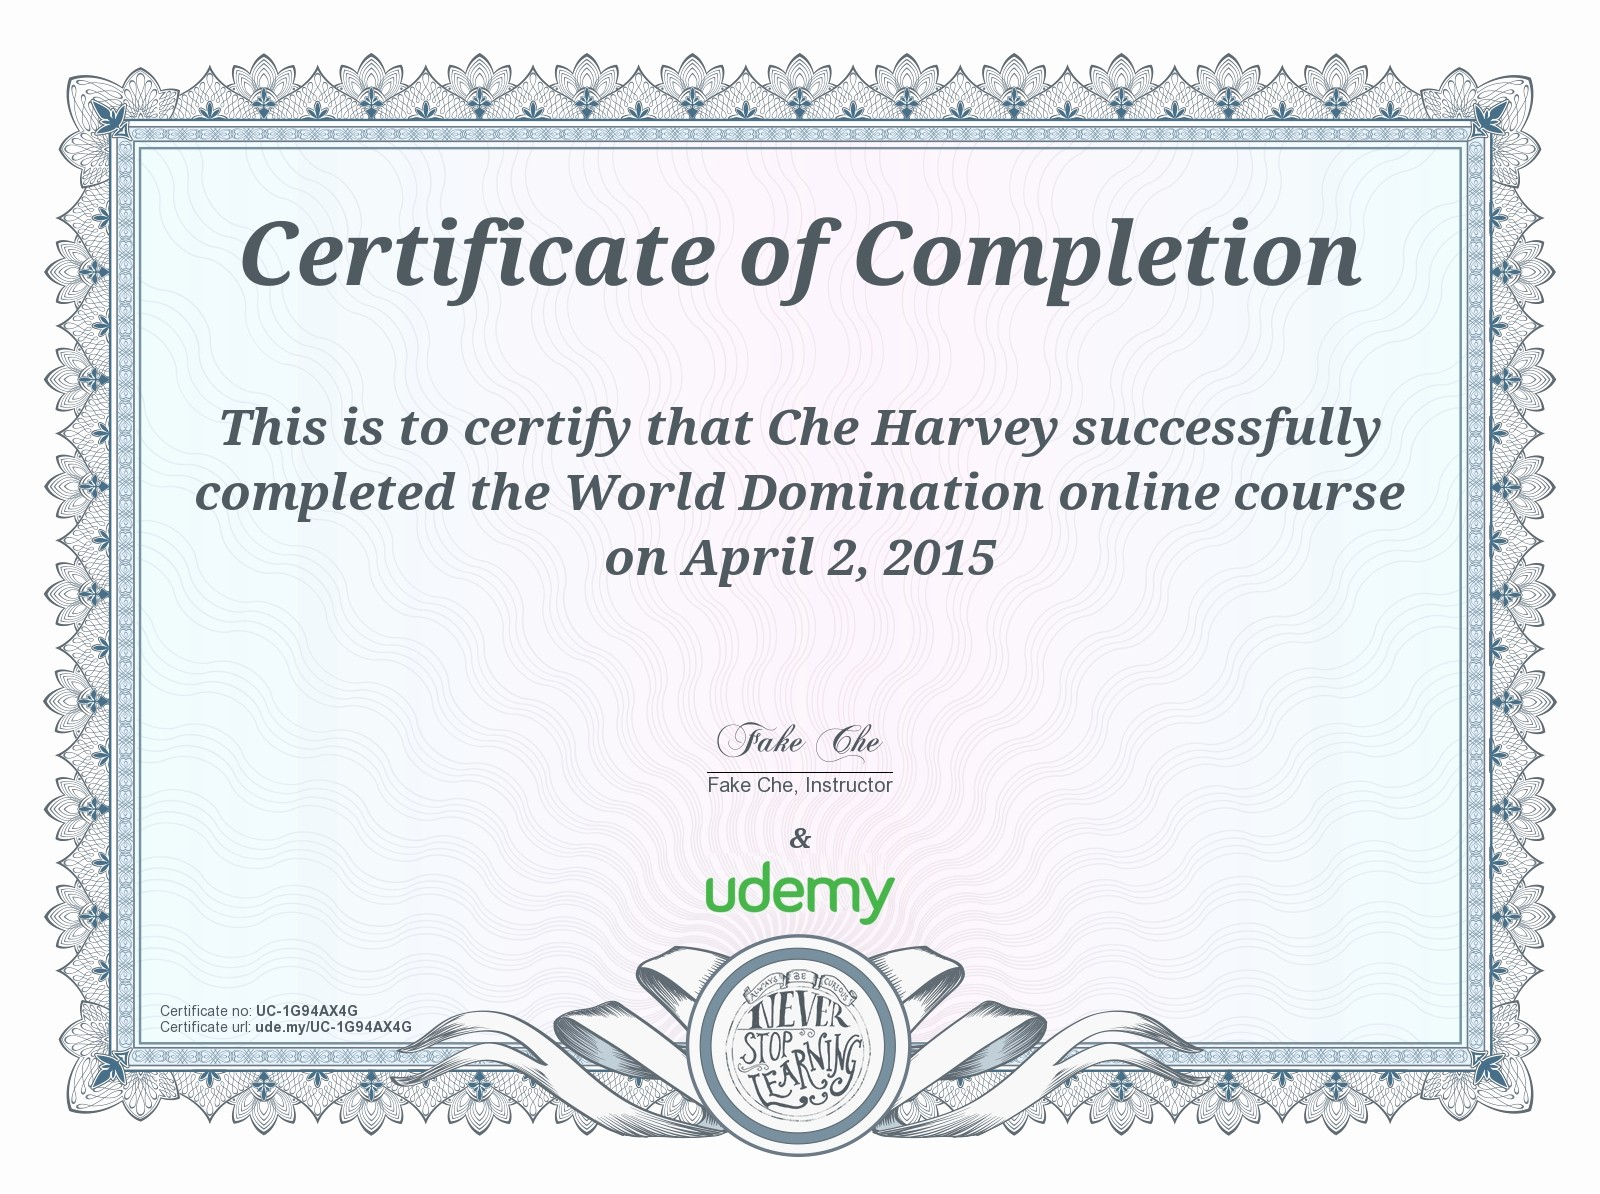 Certificate Of Completion Of Training Inspirational Certificate Of Pletion – Udemy